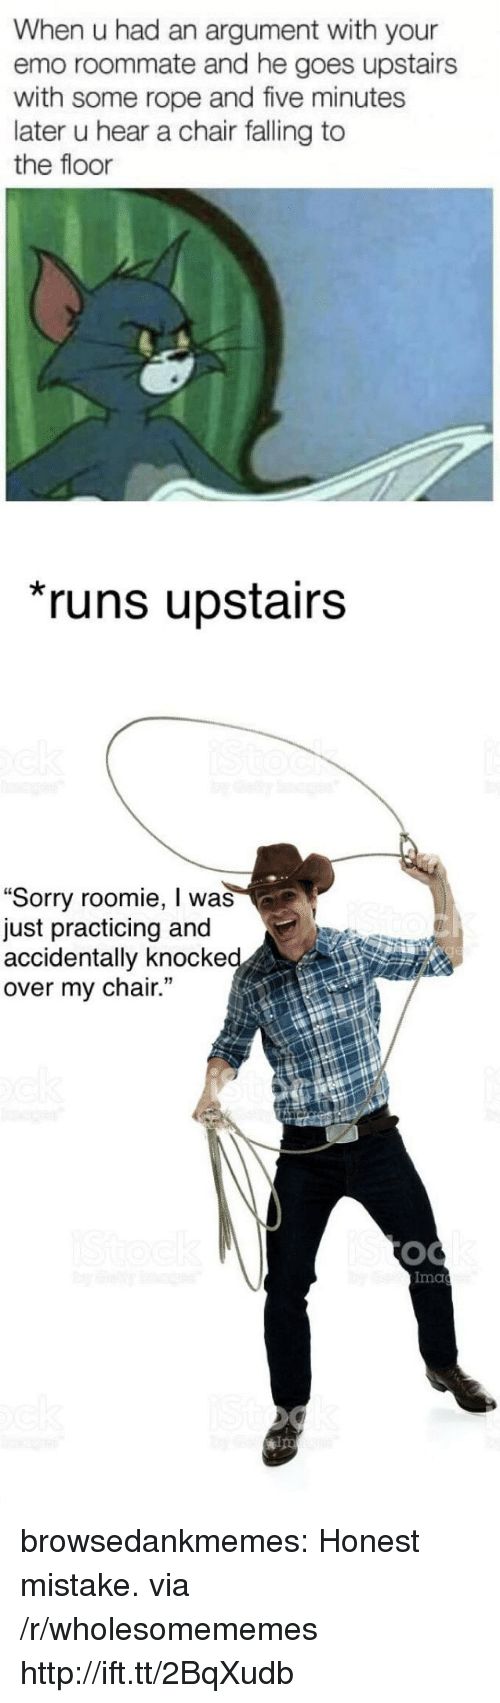 """Emo, Roommate, and Sorry: When u had an argument with your  emo roommate and he goes upstairs  with some rope and five minutes  later u hear a chair falling to  the floor  runs upstairs  """"Sorry roomie, I was  just practicing and  accidentally knocke  over my chair.  Ima  ips browsedankmemes:  Honest mistake. via /r/wholesomememes http://ift.tt/2BqXudb"""